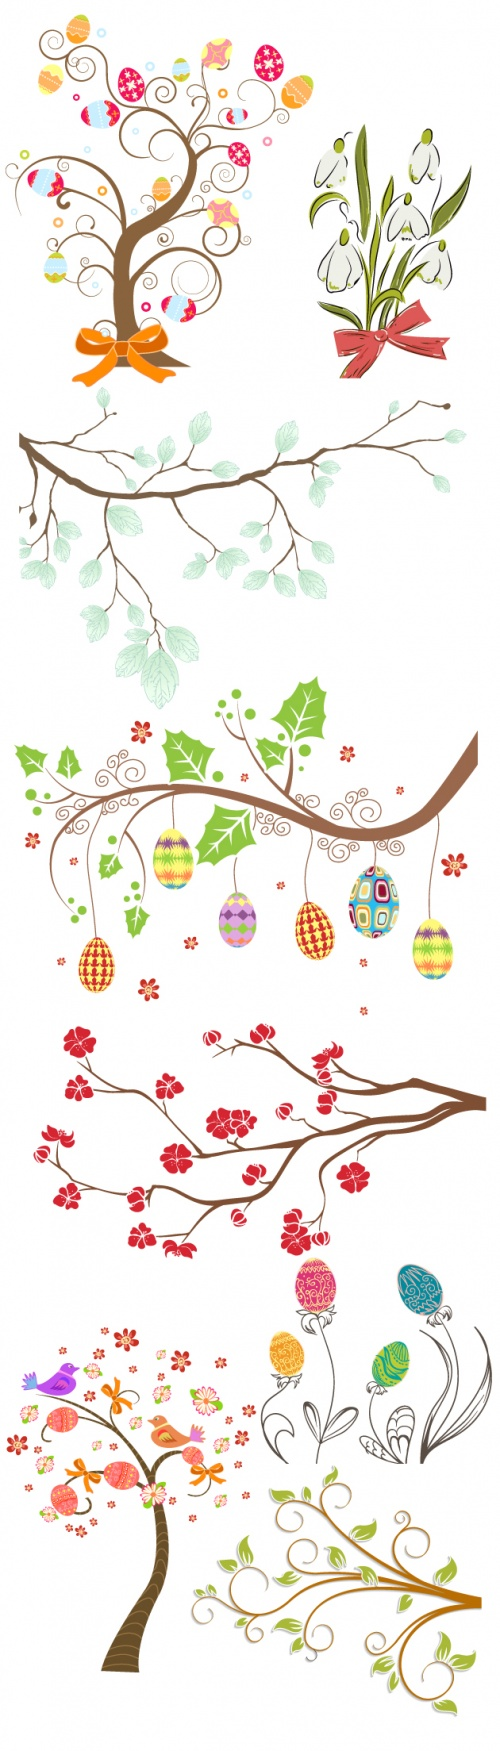 Designtnt - Vector Easter Elements Set 3